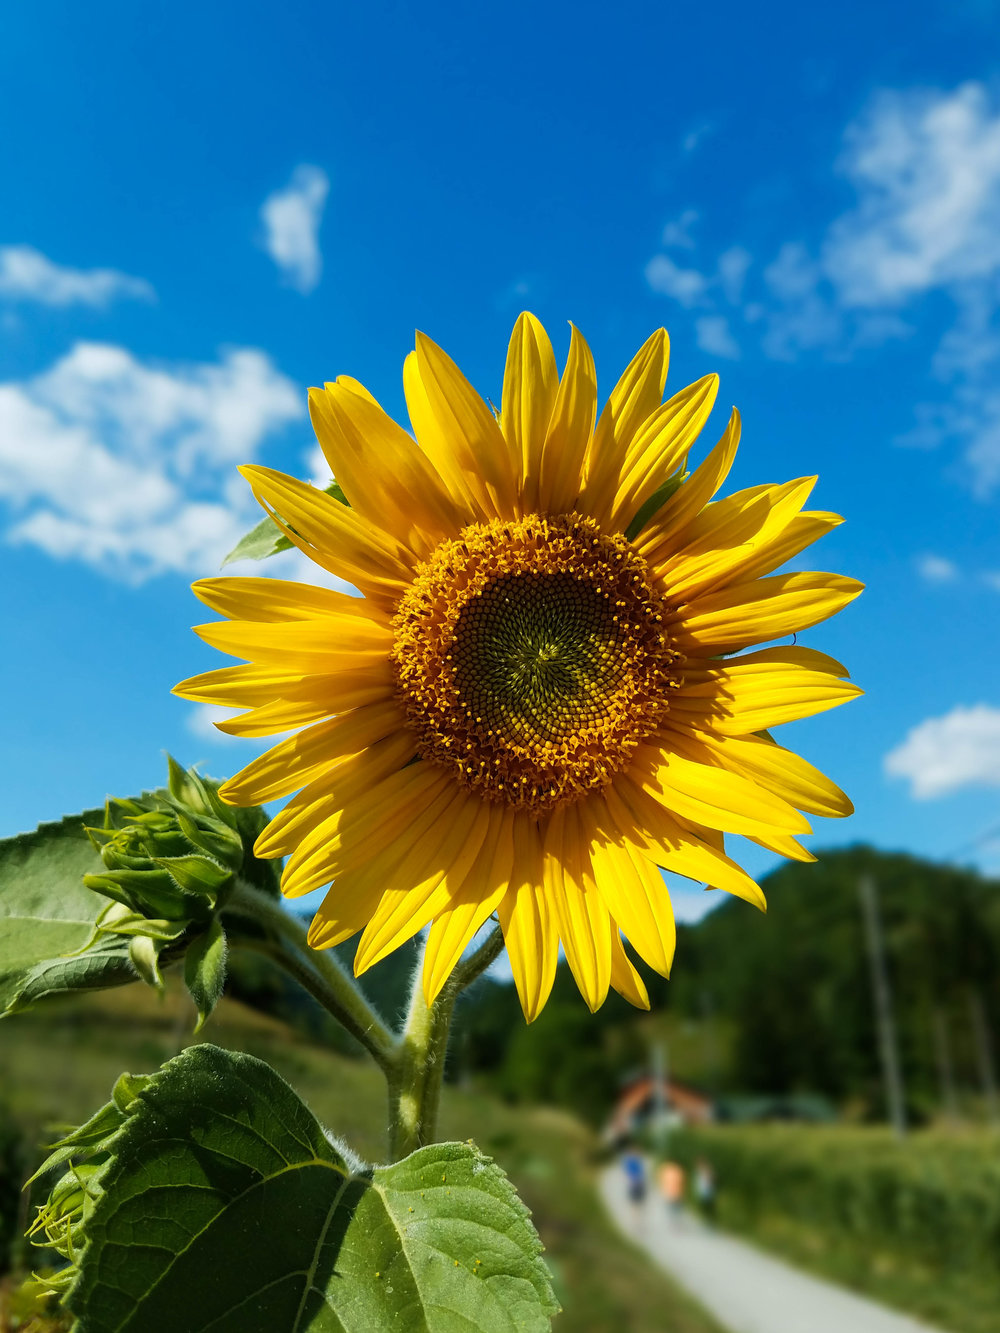 A sunflower in the fields